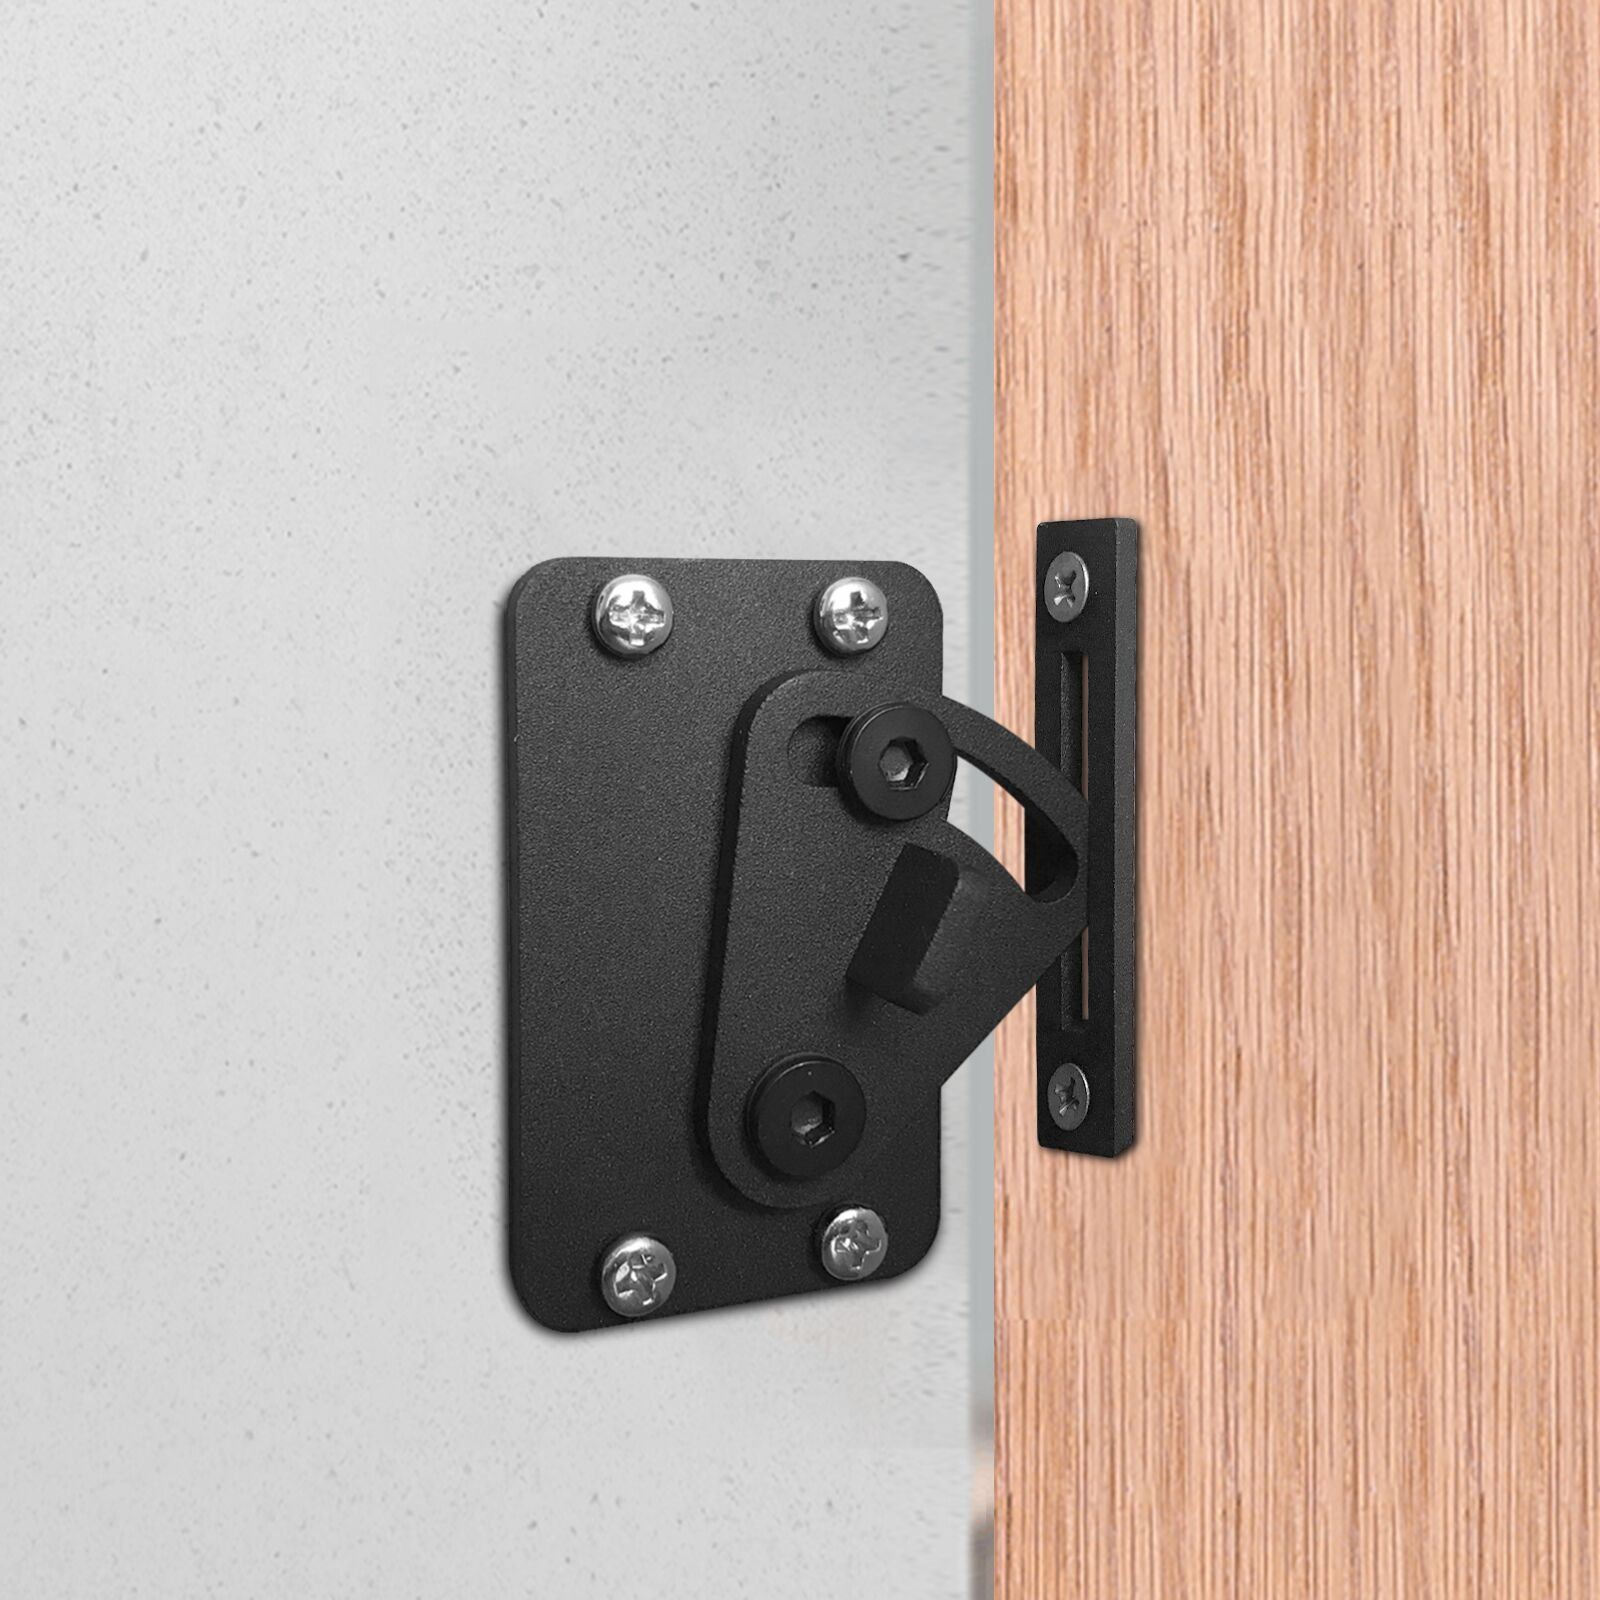 Cheap Sliding Barn Door Lock Find Sliding Barn Door Lock Deals On